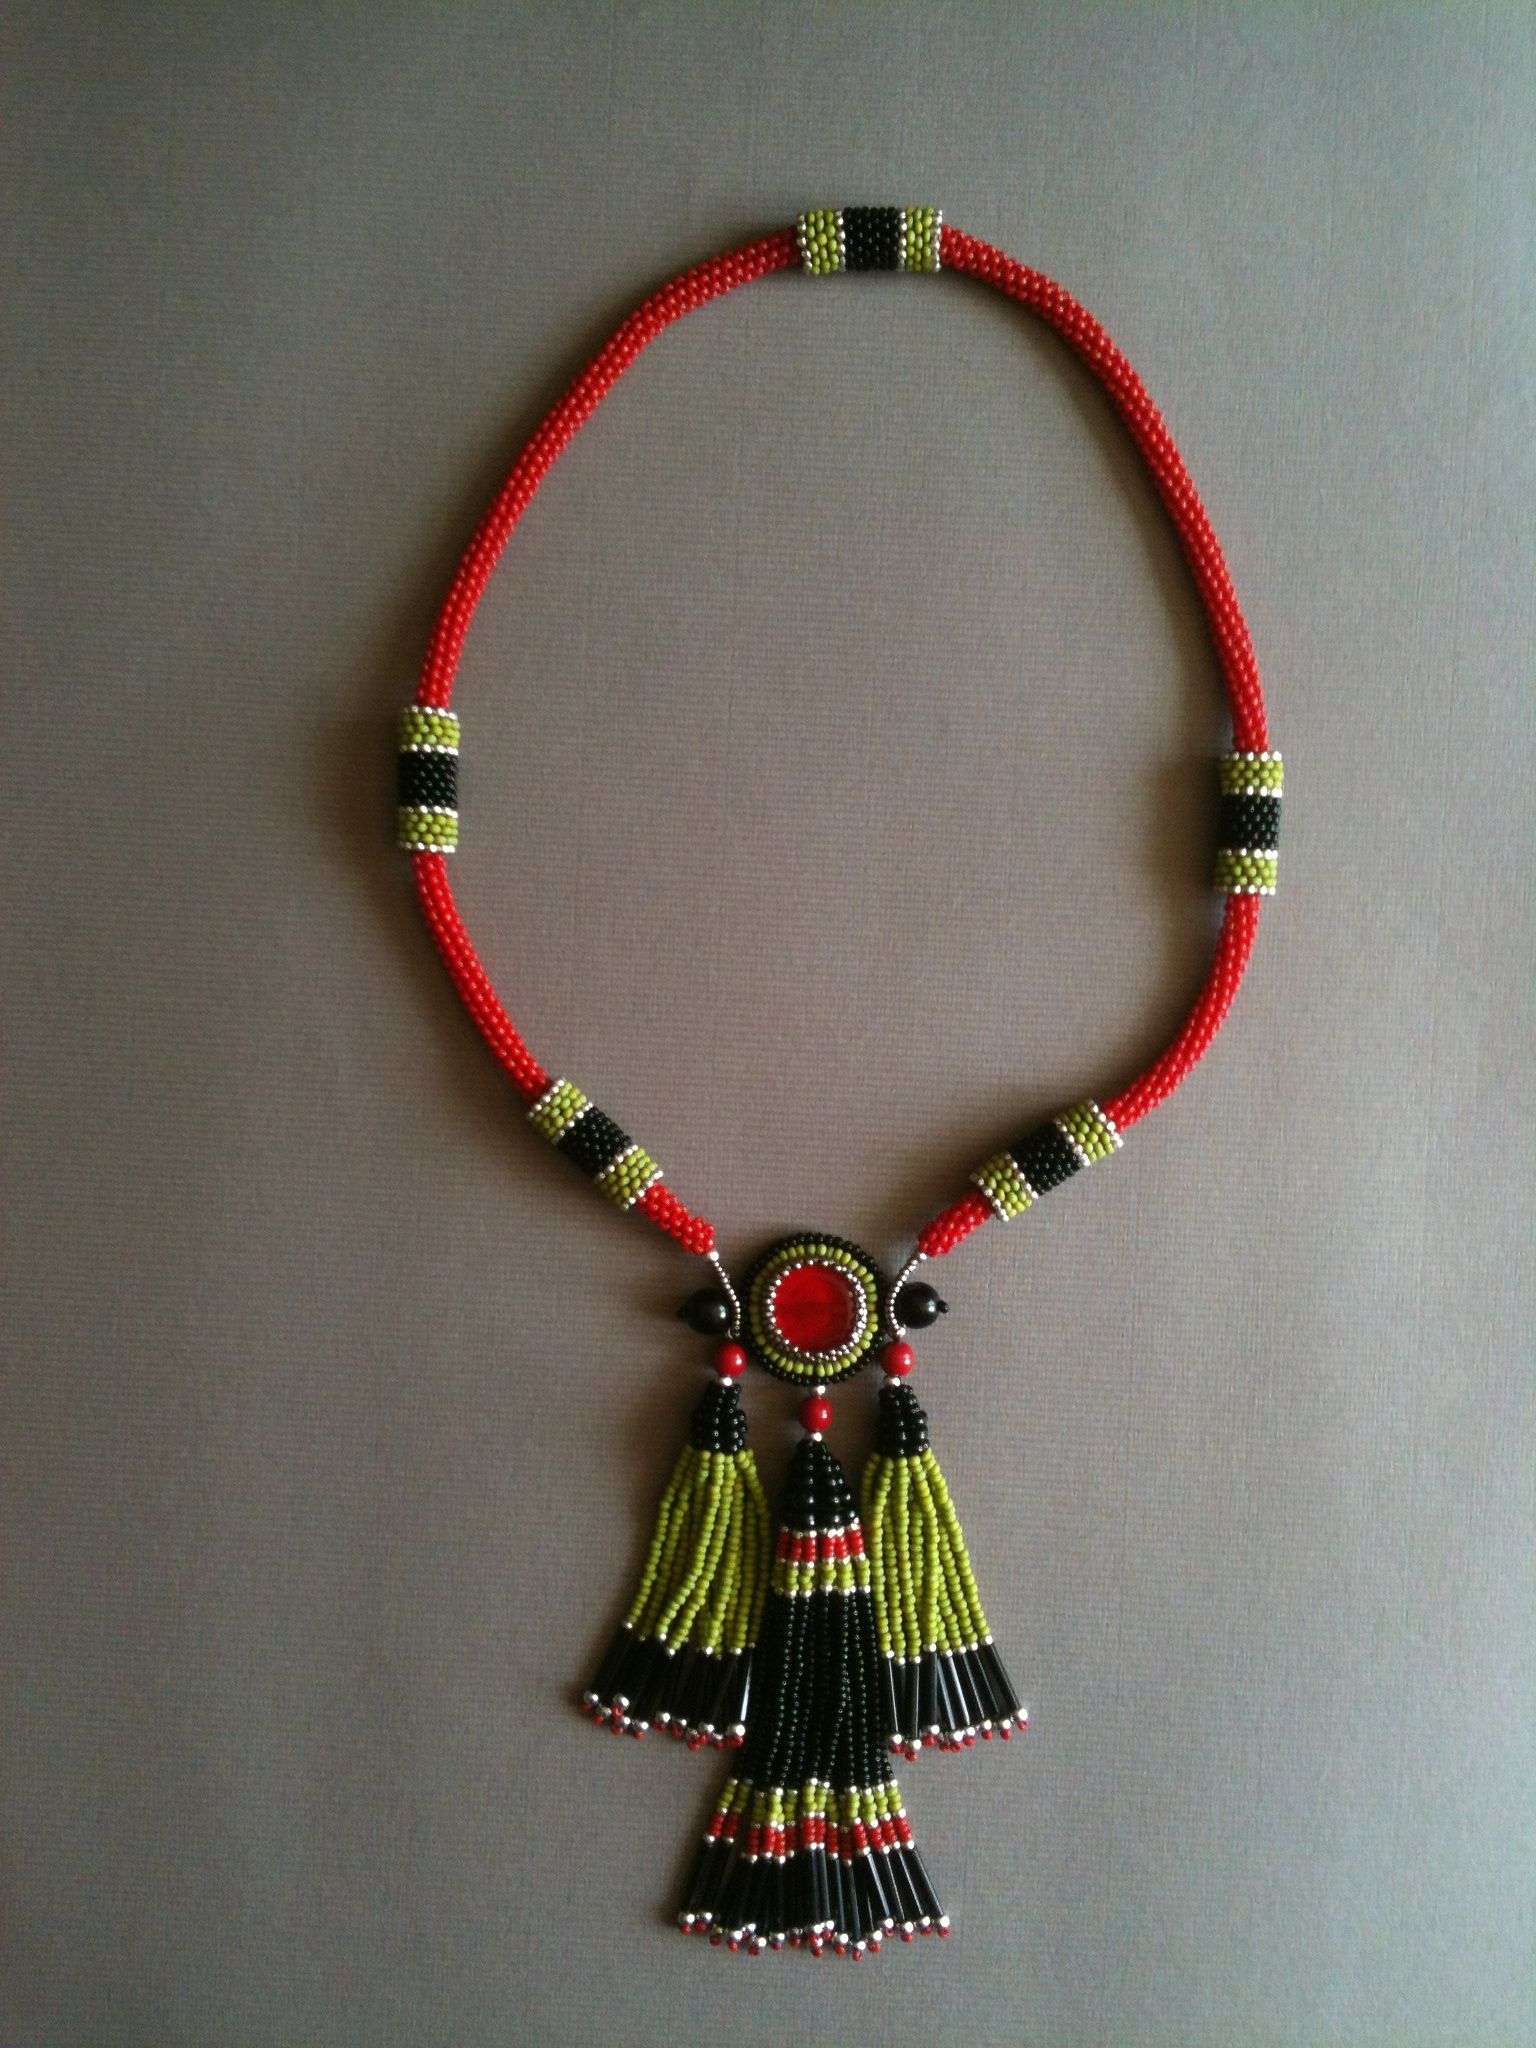 black red green tassel necklace seed bead woven bead. Black Bedroom Furniture Sets. Home Design Ideas